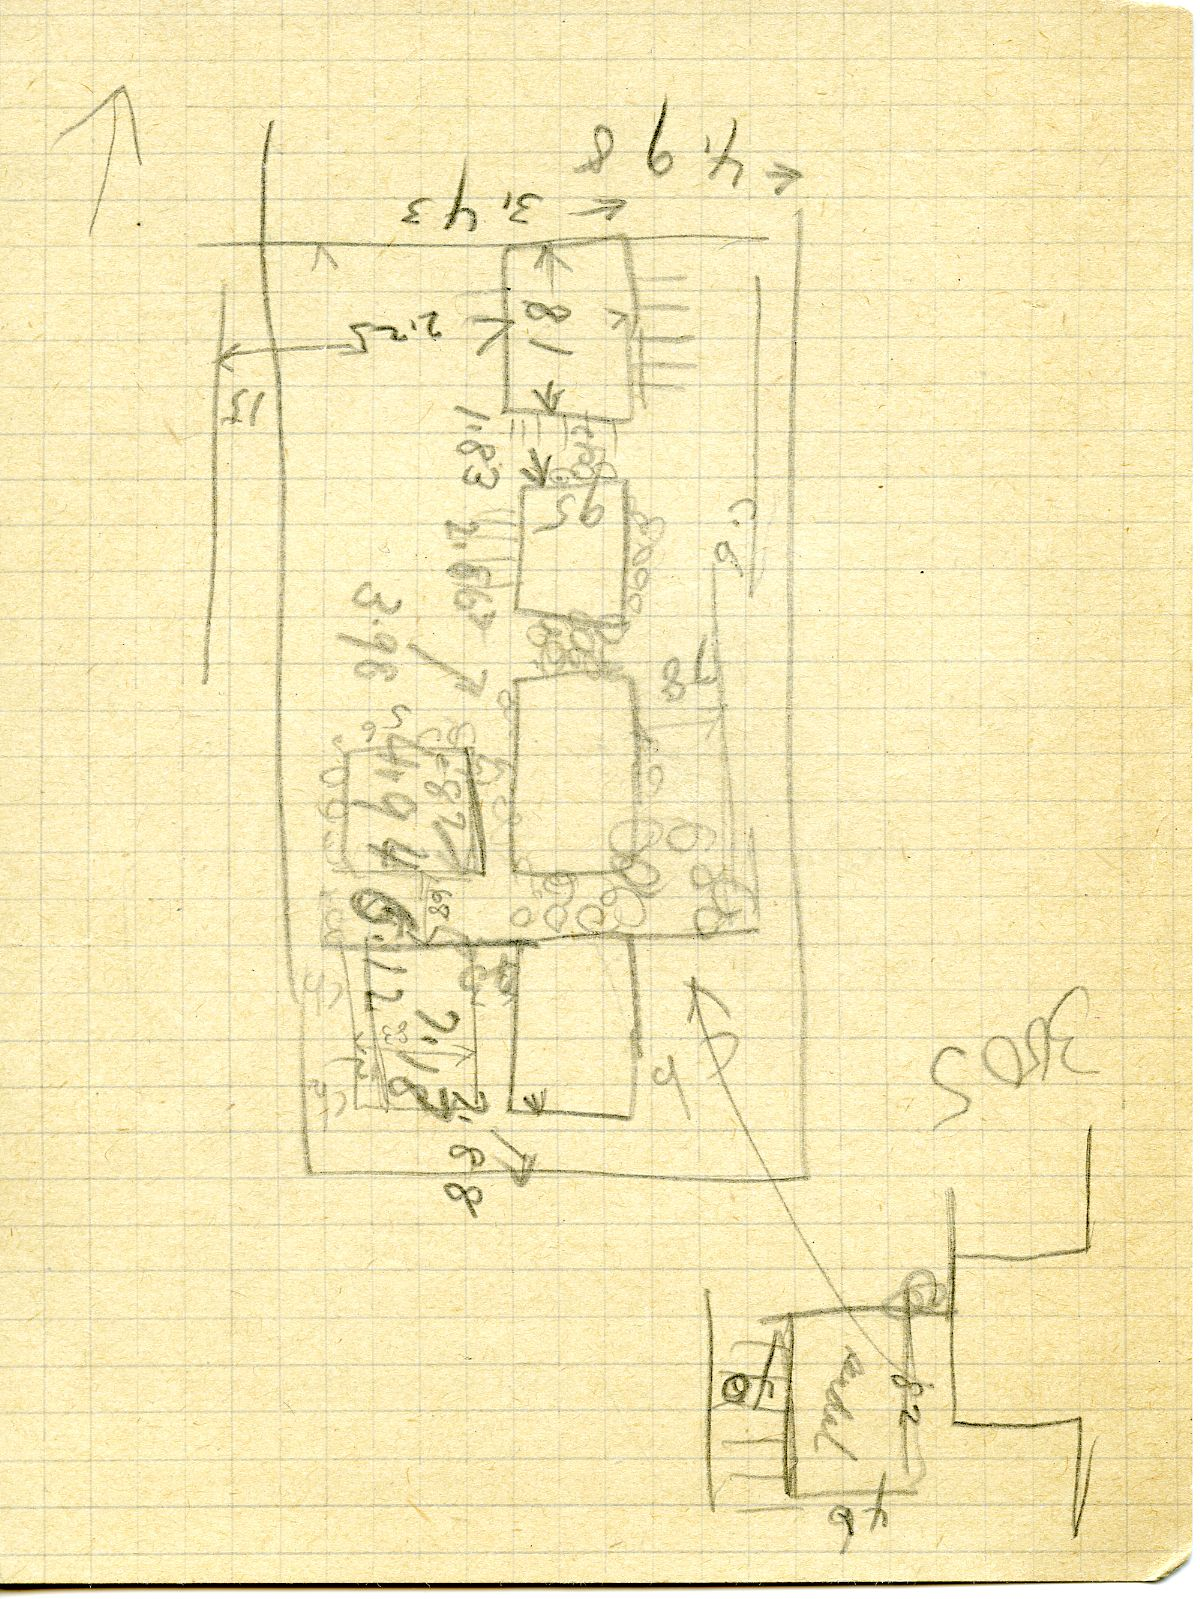 Maps and plans: G 3005, Sketch plan